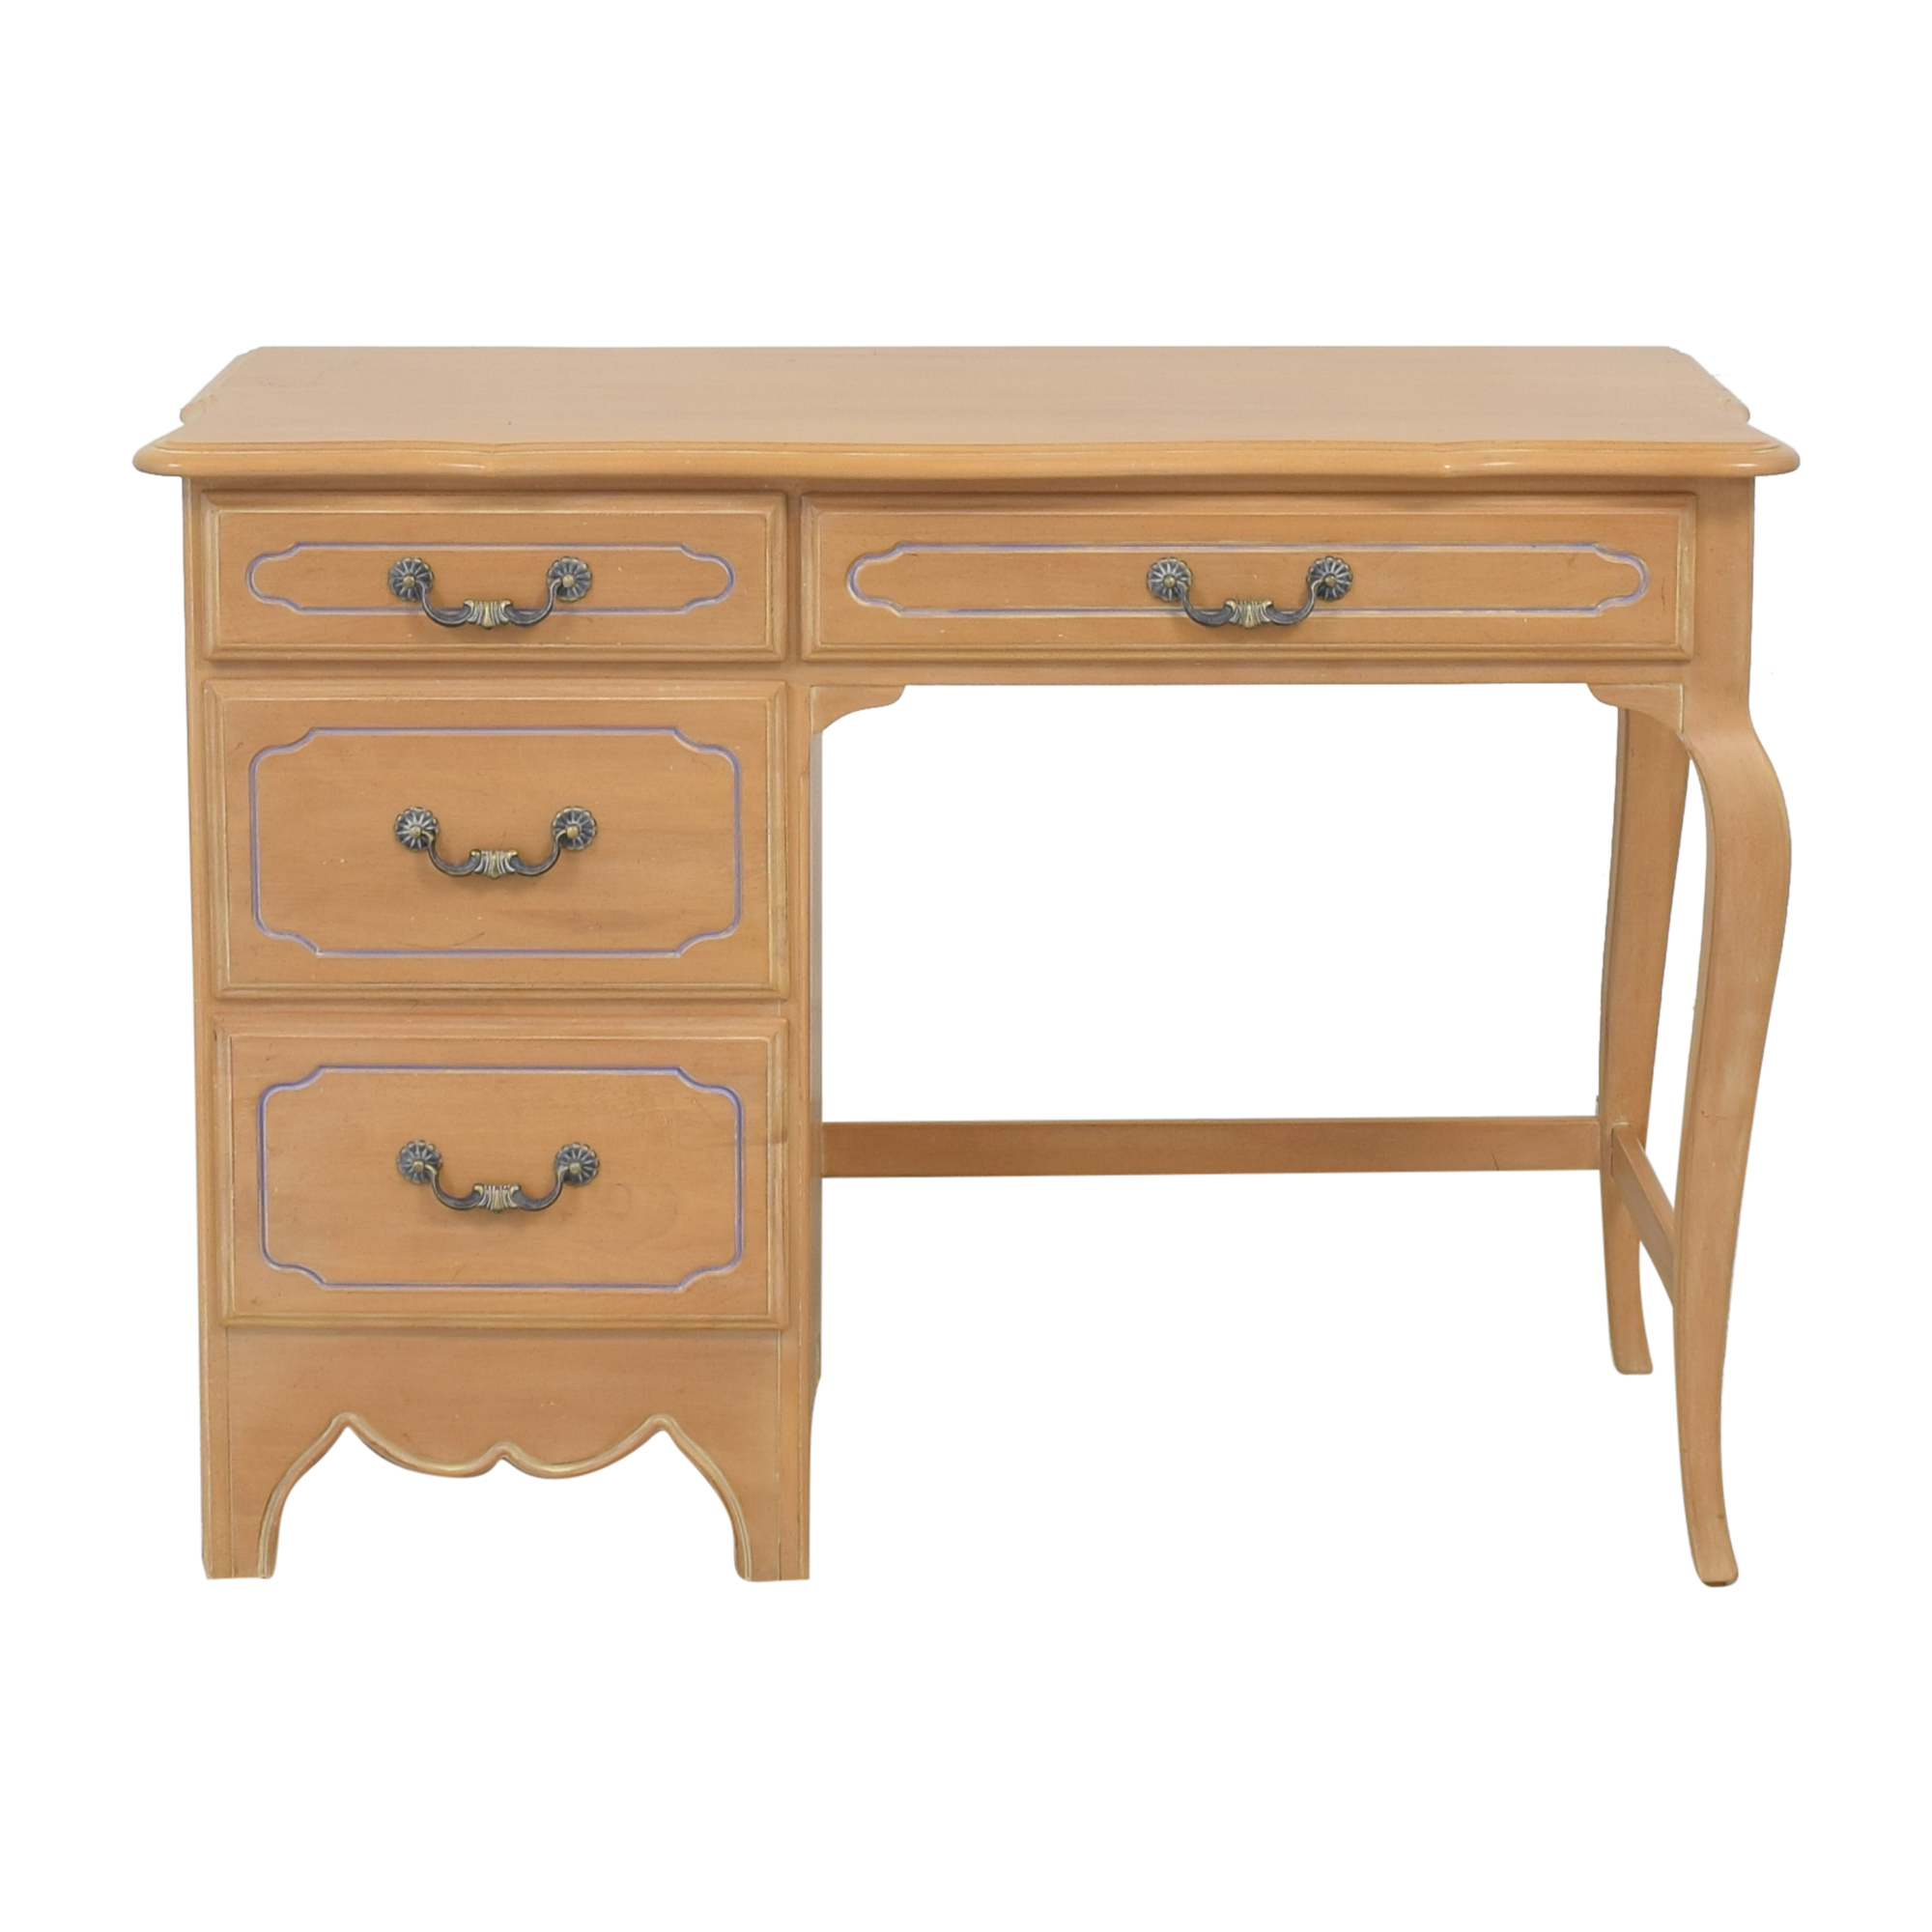 Ethan Allen Traditional Desk with Drawers sale